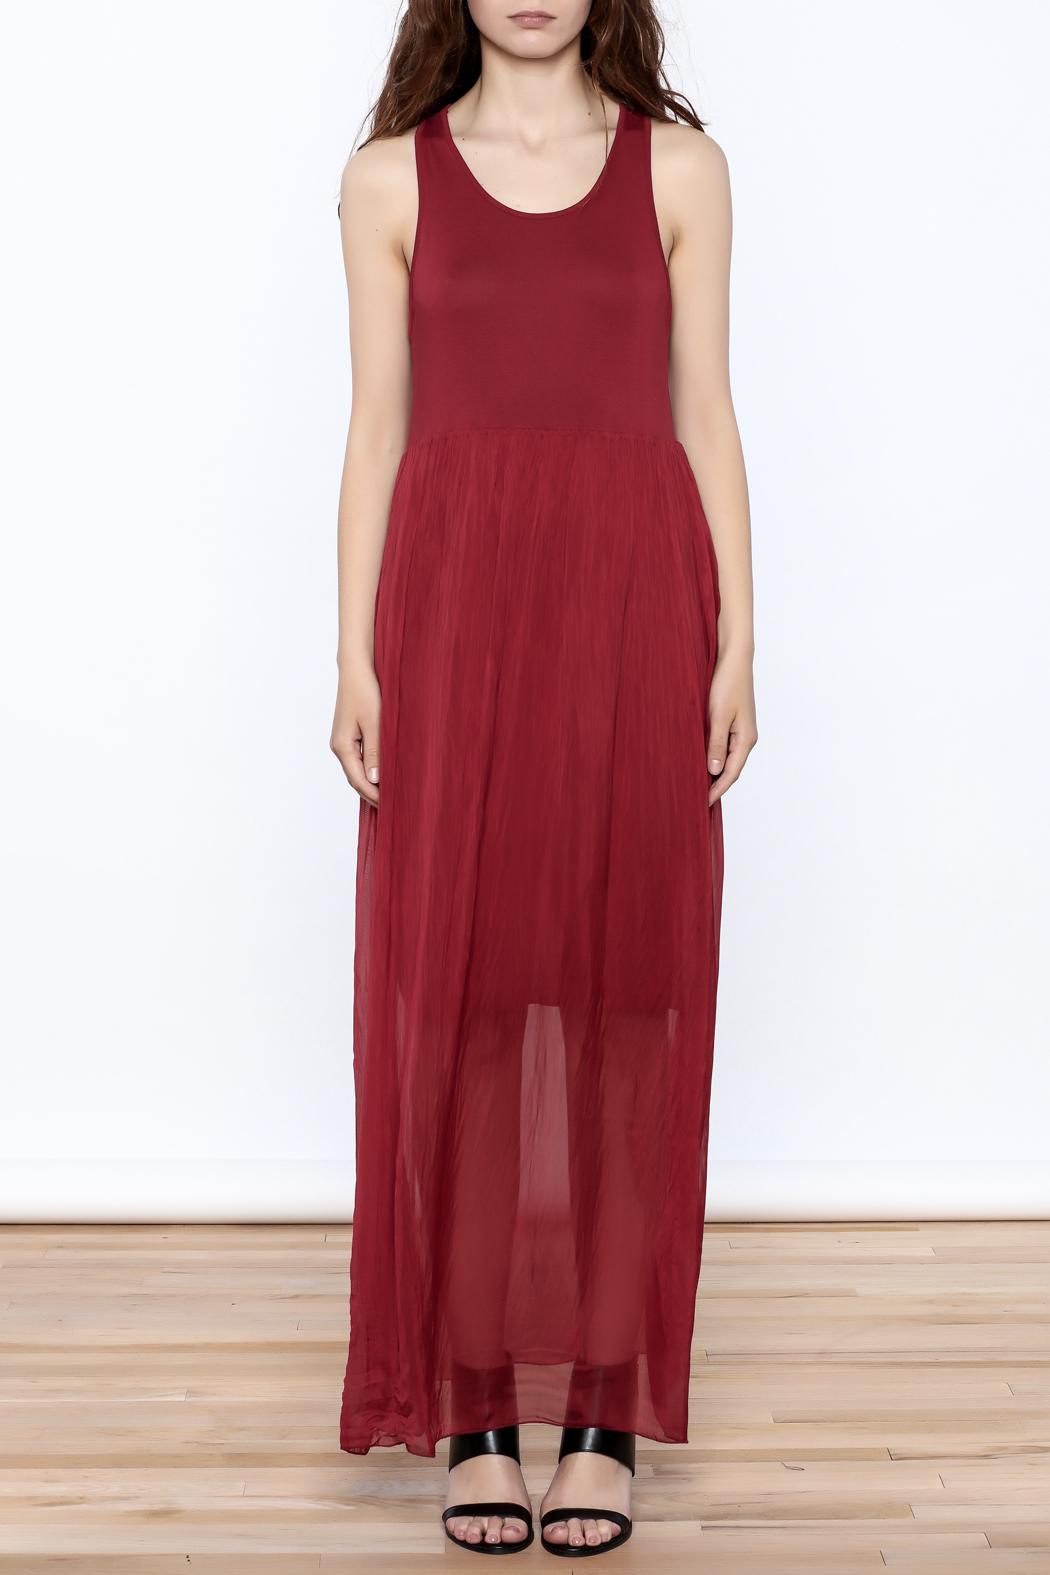 L & C Fashion Silk Maxi Dress - Front Cropped Image